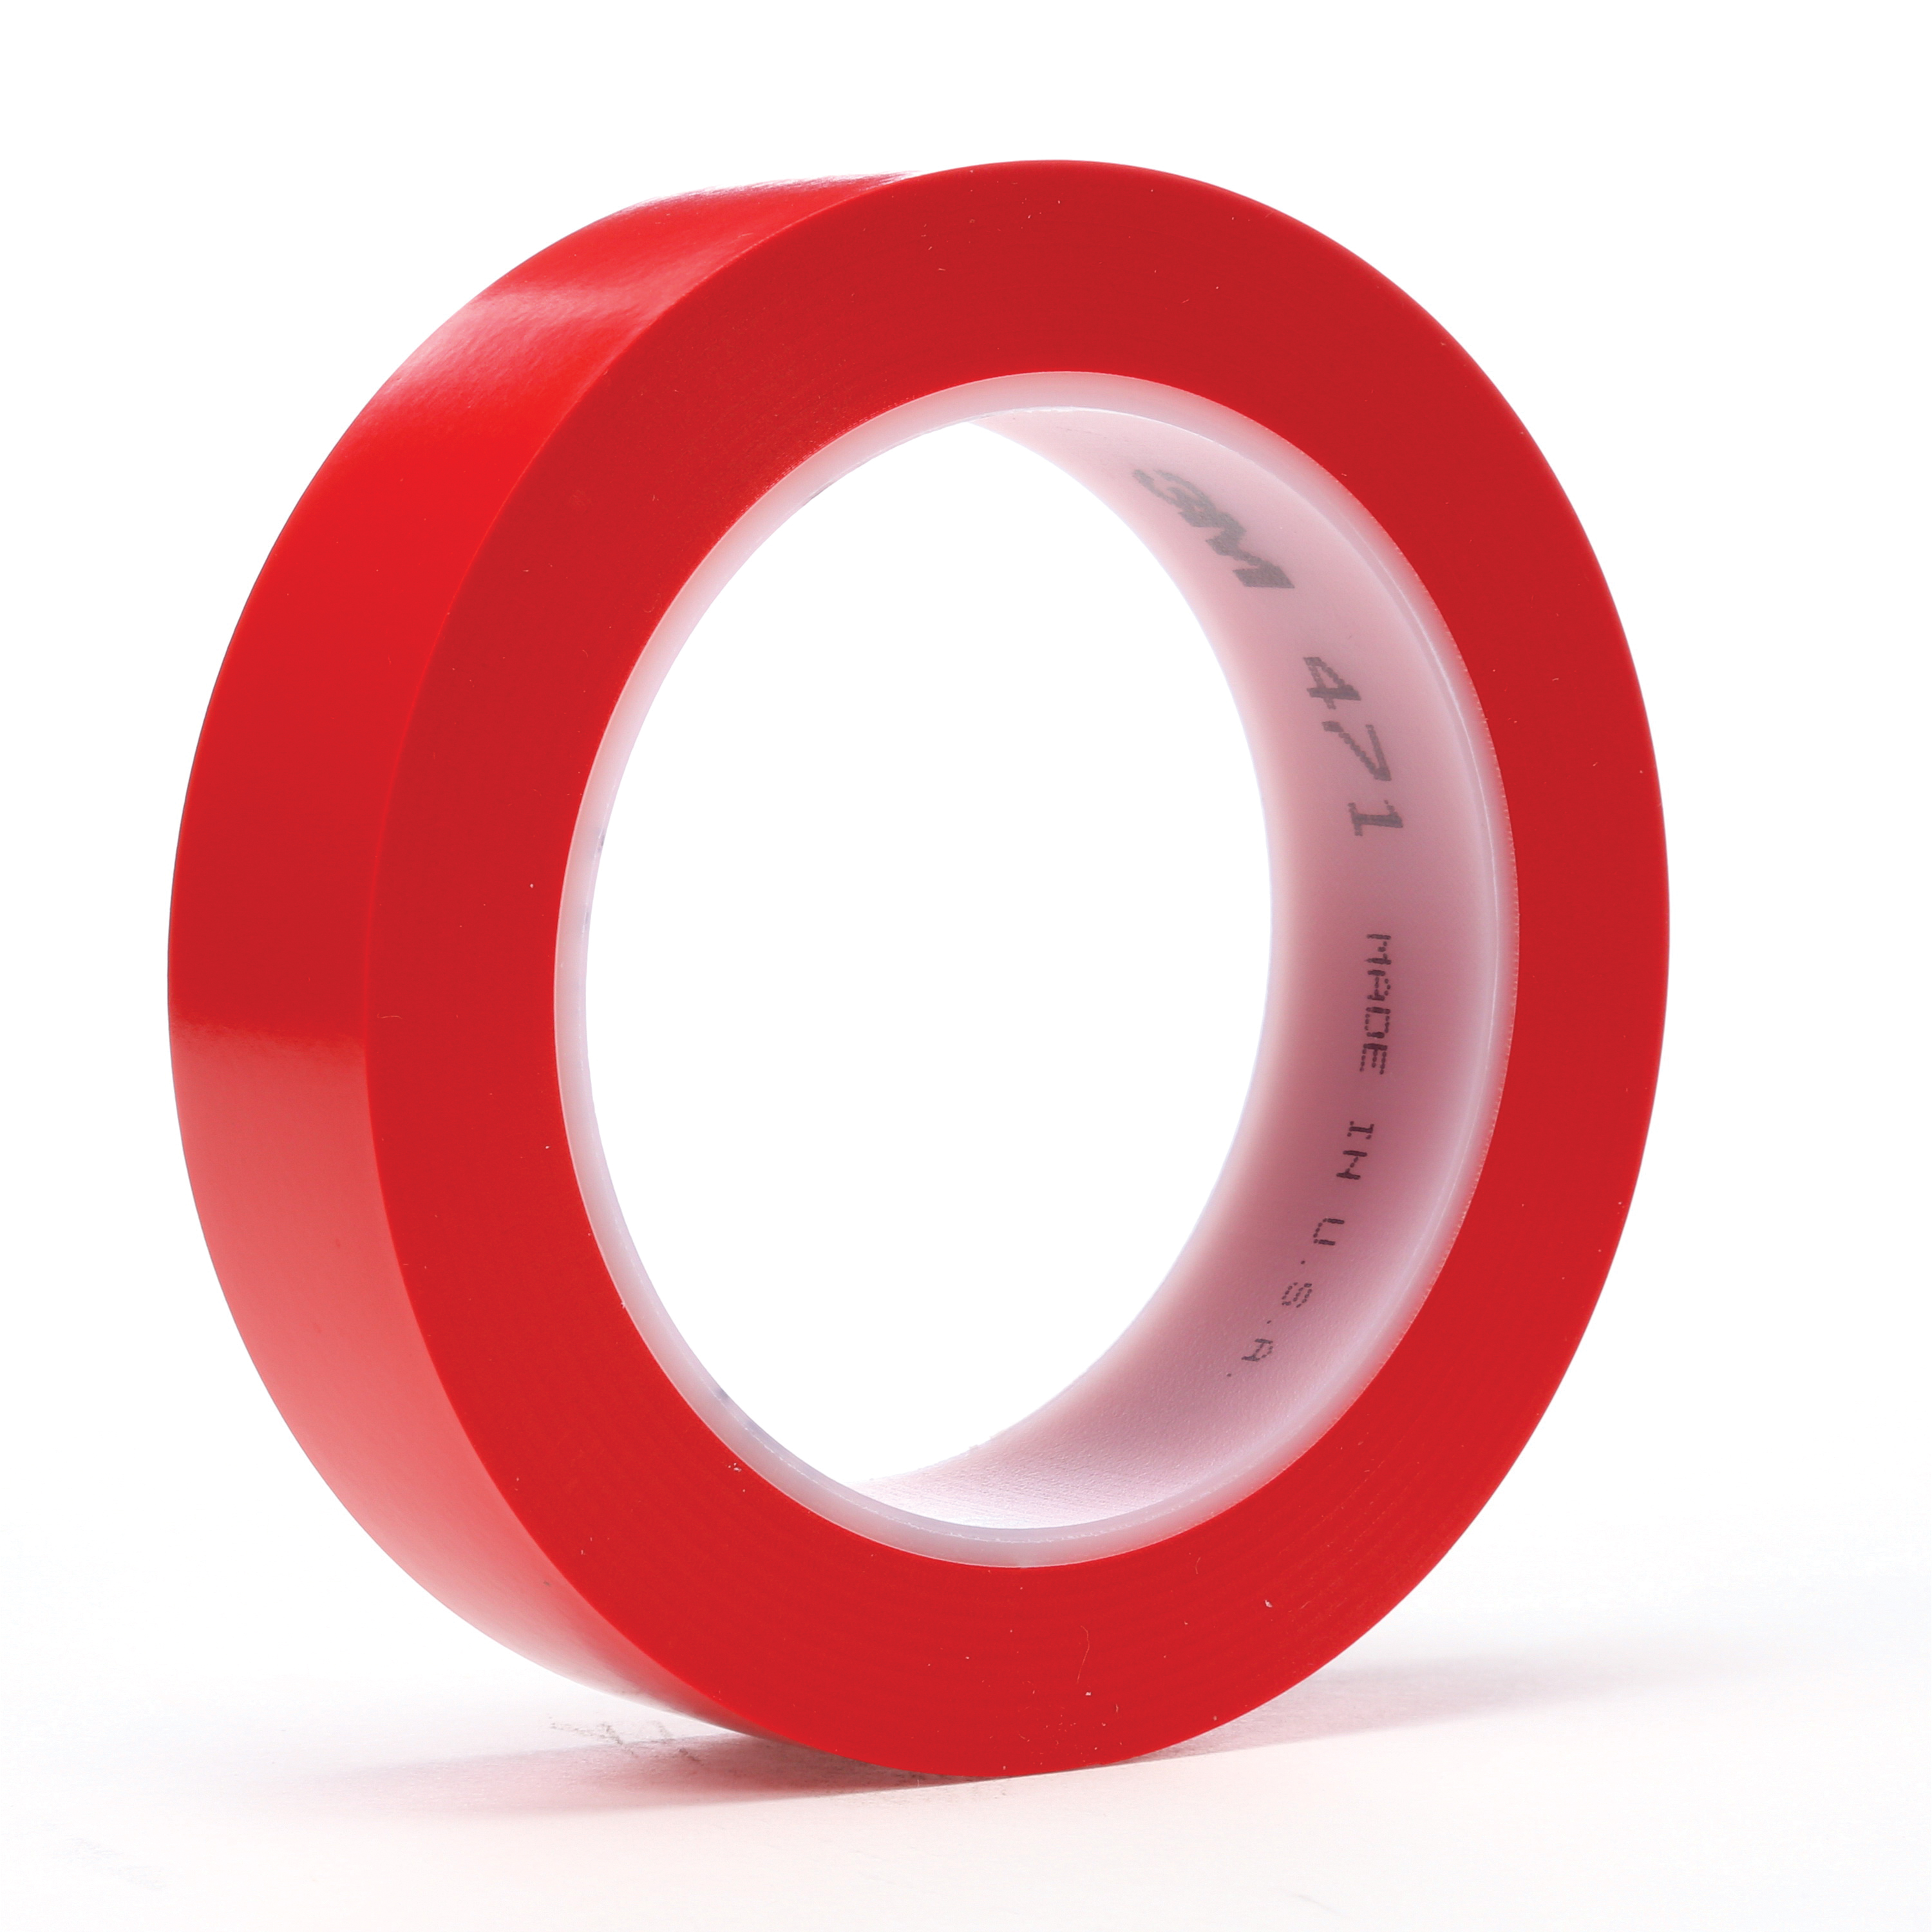 3M™ 021200-03107 471 High Performance Marking Tape, 1 in W x 36 yd Roll L, 5.2 mil THK, Red